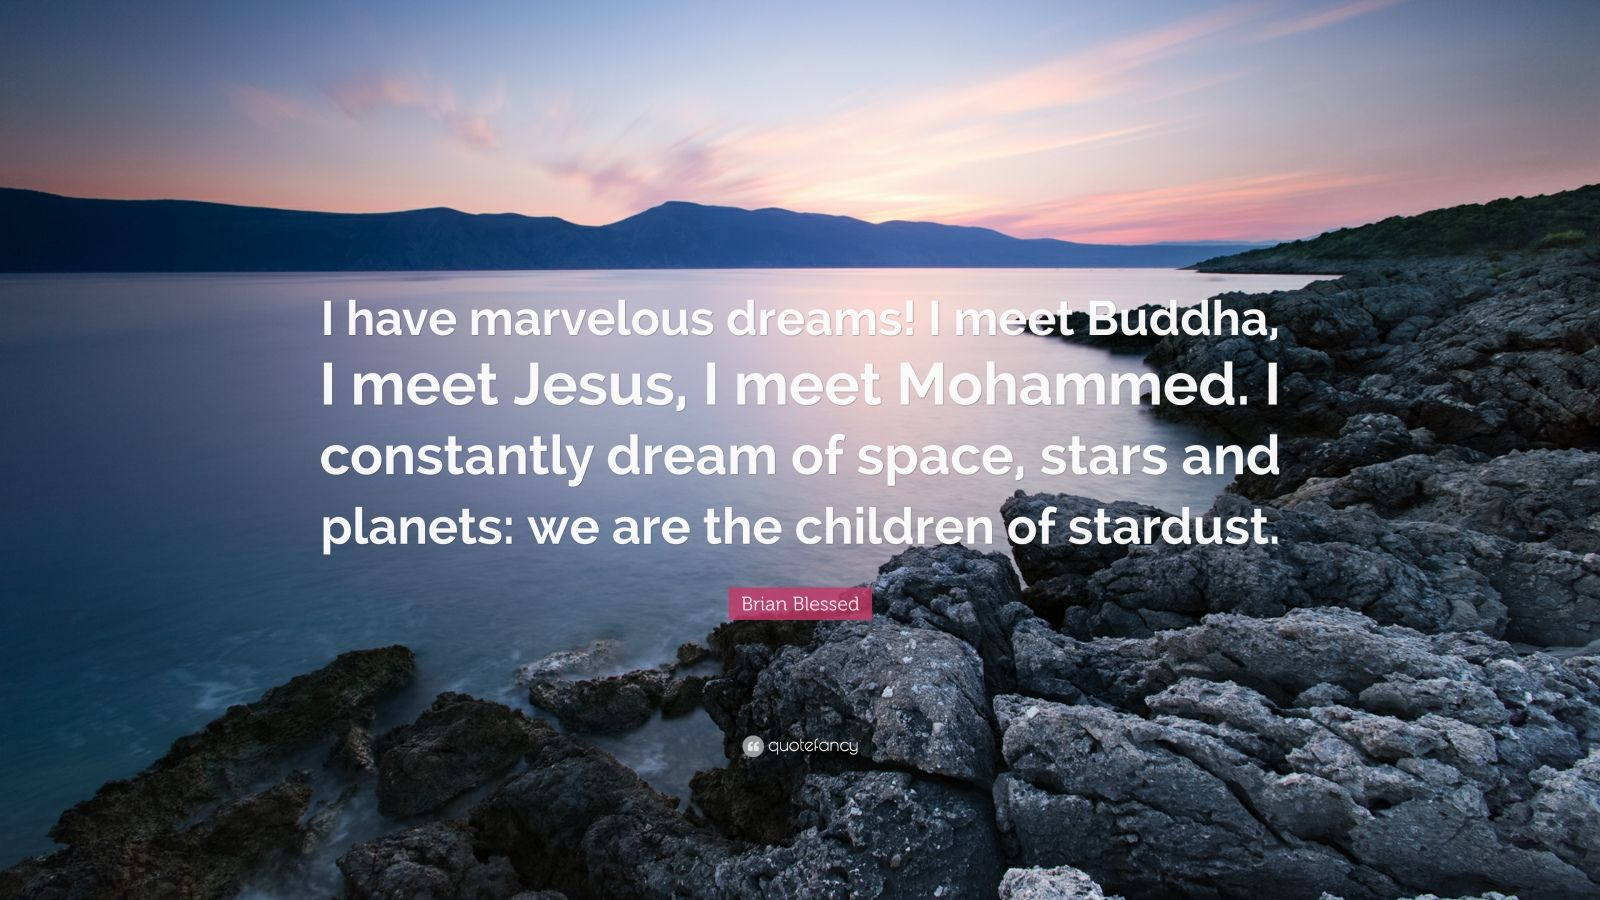 """Brian Blessed Quote: """"I have marvelous dreams! I meet Buddha, I meet Jesus, I meet Mohammed. I constantly dream of space, stars and planets: we are the children of stardust."""""""